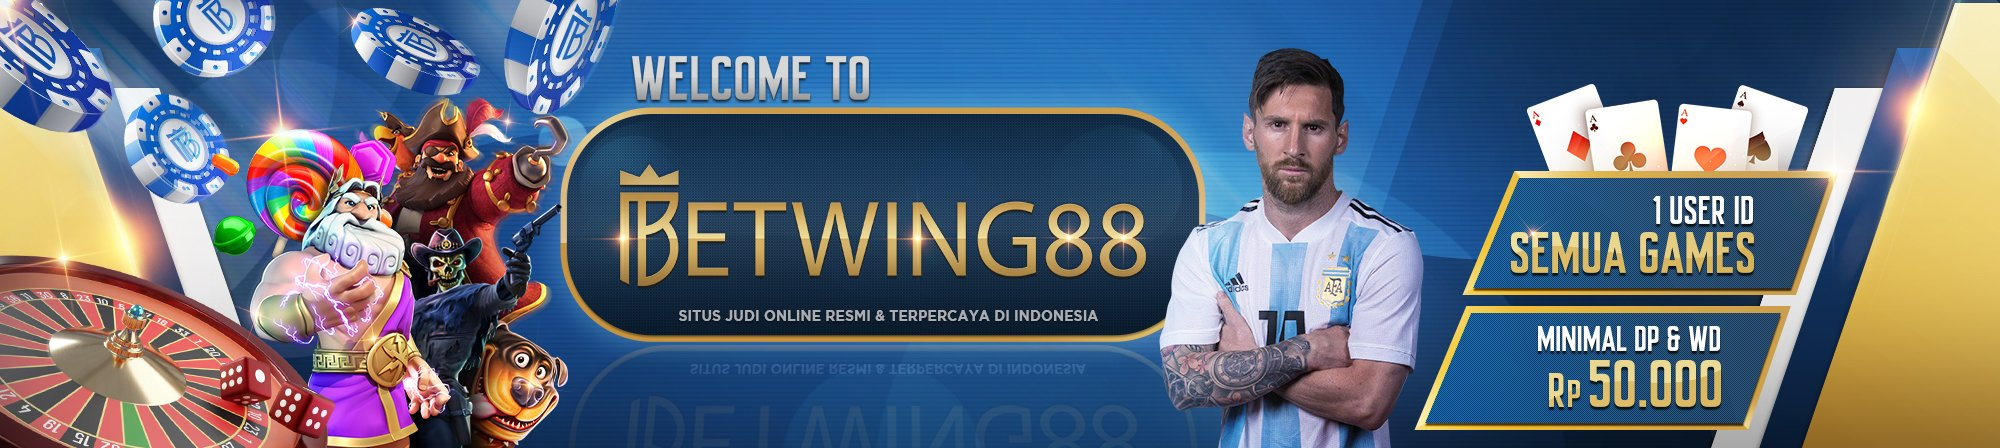 WELCOME TO BETWING88